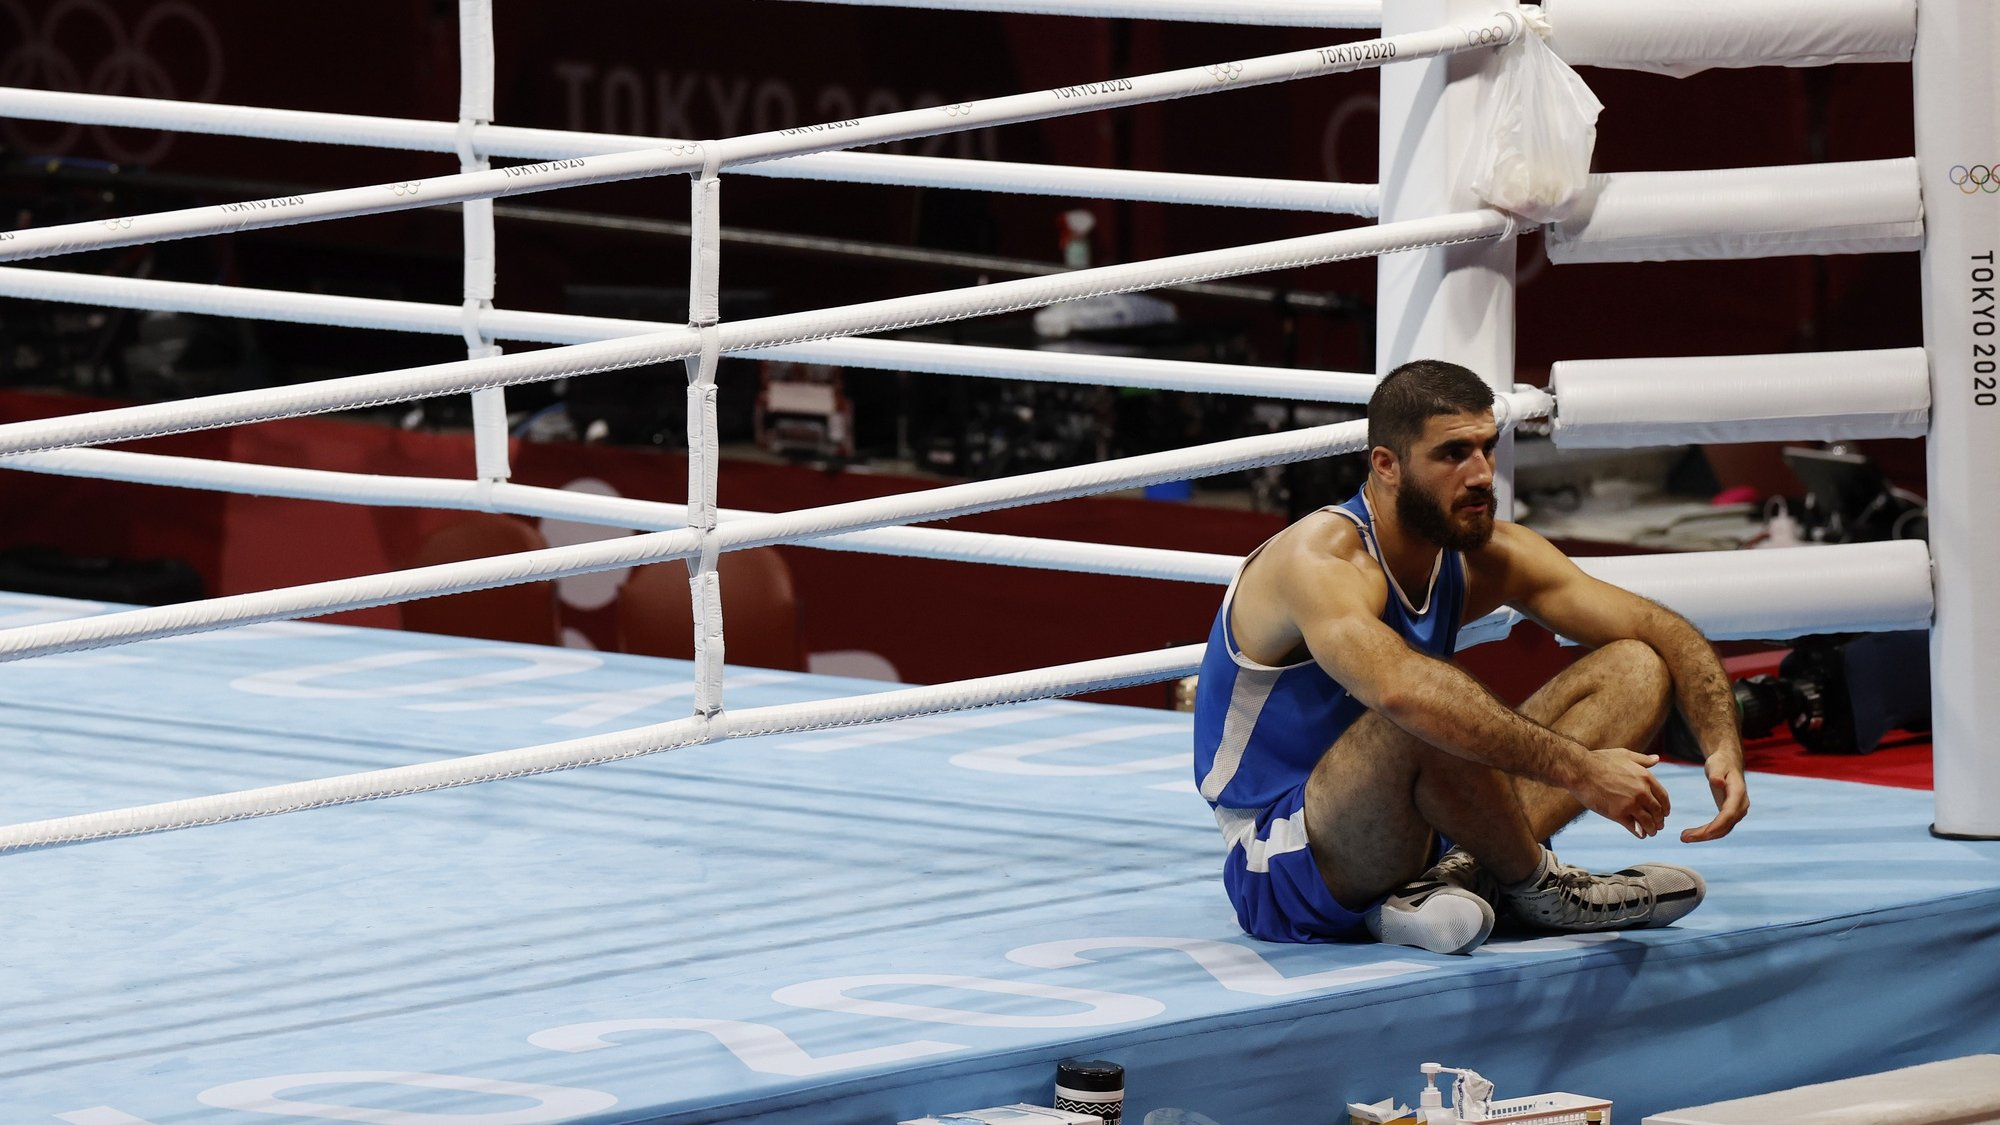 epa09383986 Mourad Aliev of France sits outside the ring in protest after losing his match against Frazer Clarke of Great Britain in the Men's Super Heavy (+91kg) quarterfinal match of the Boxing events of the Tokyo 2020 Olympic Games at the Ryogoku Kokugikan Arena in Tokyo, Japan, 01 August 2021.  EPA/RUNGROJ YONGRIT